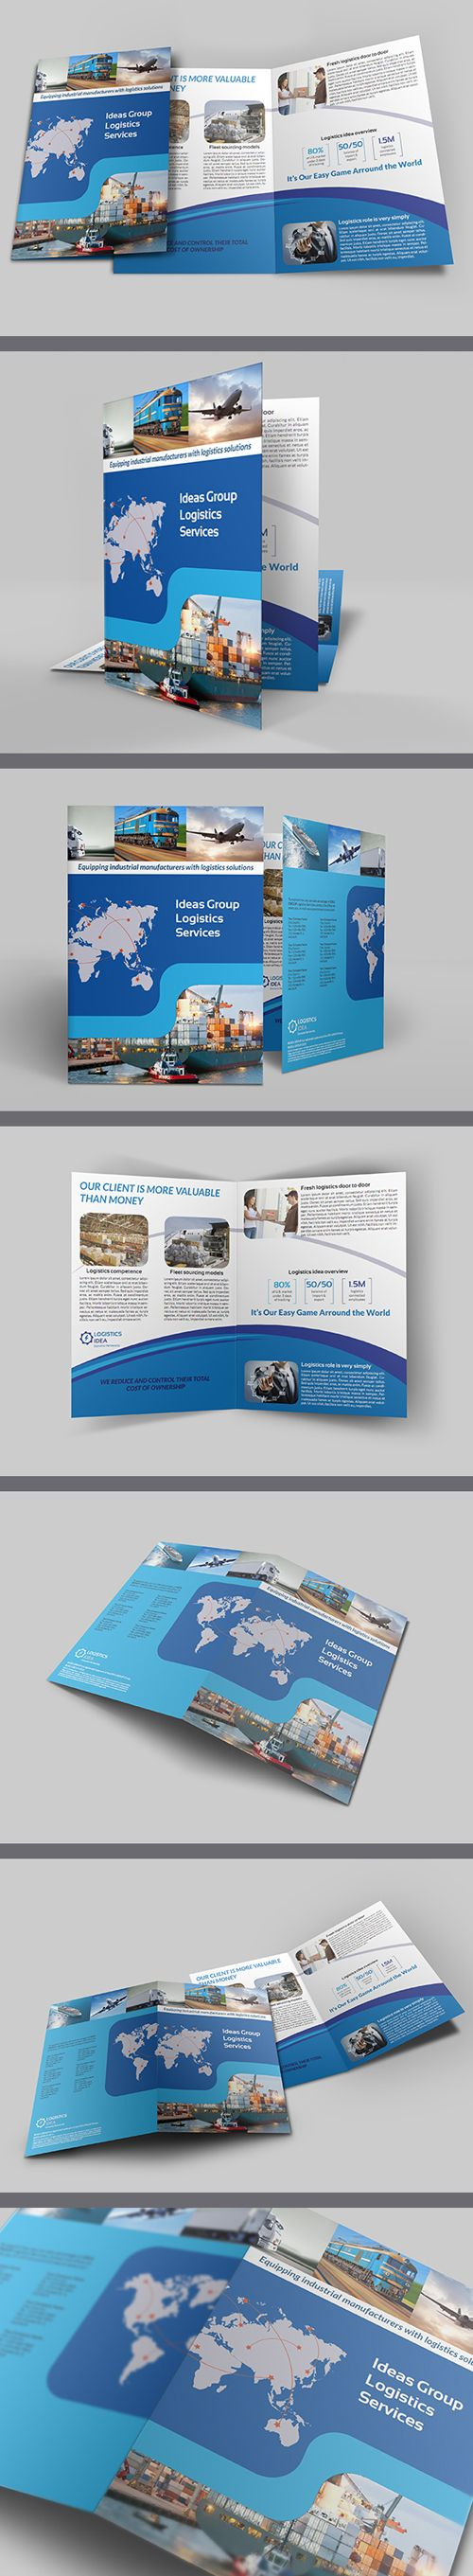 Logistics Services Bi Fold Brochure Template #brochuredesign  #corporatebrochure #graphicdesign